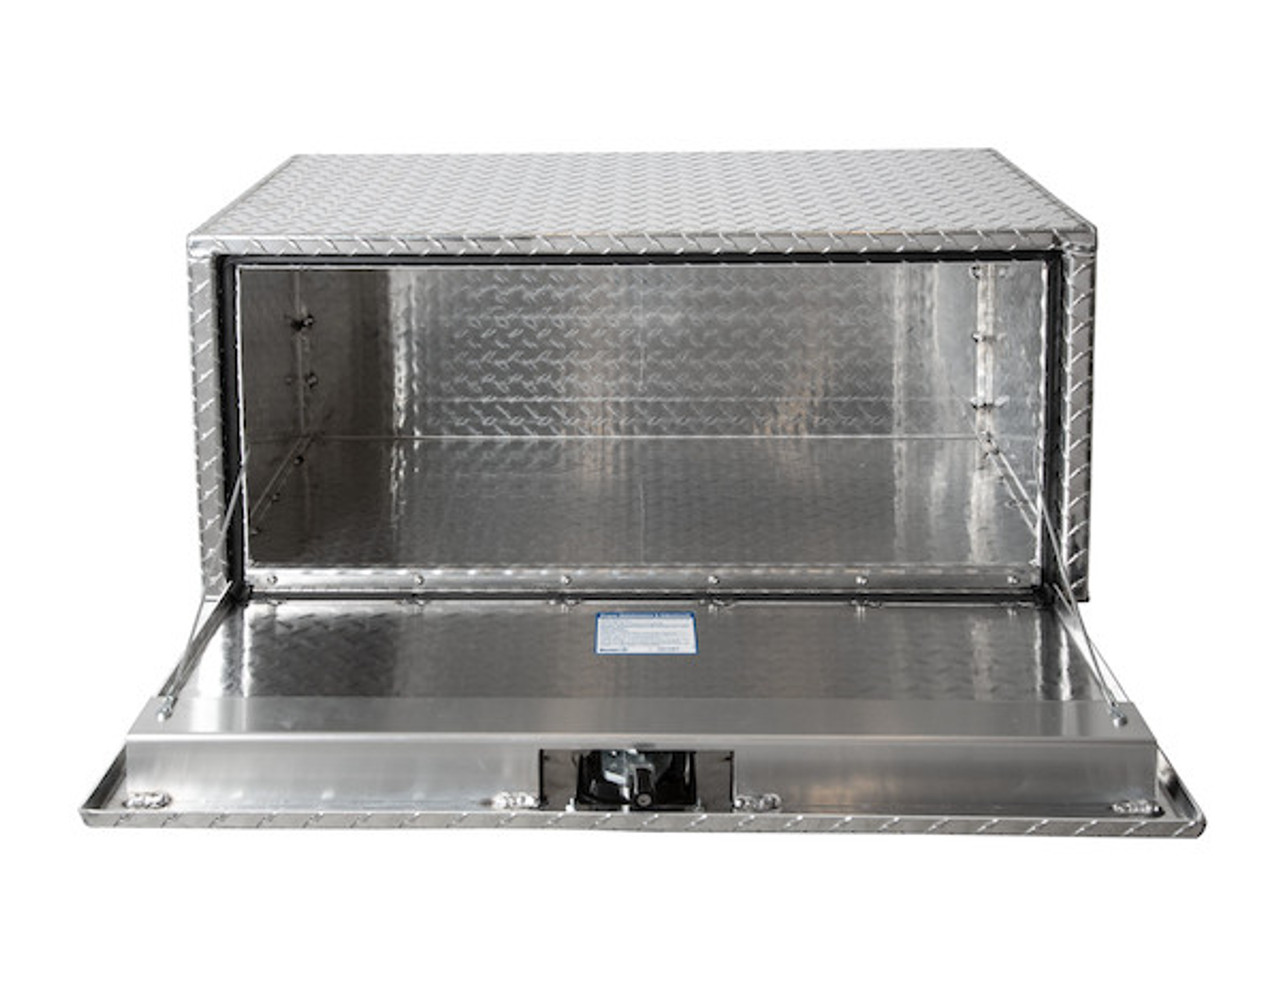 "1705101 BUYERS PRODUCTS DIAMOND TREAD ALUMINUM UNDERBODY TRUCK TOOLBOX 18""HX18""DX18""W"